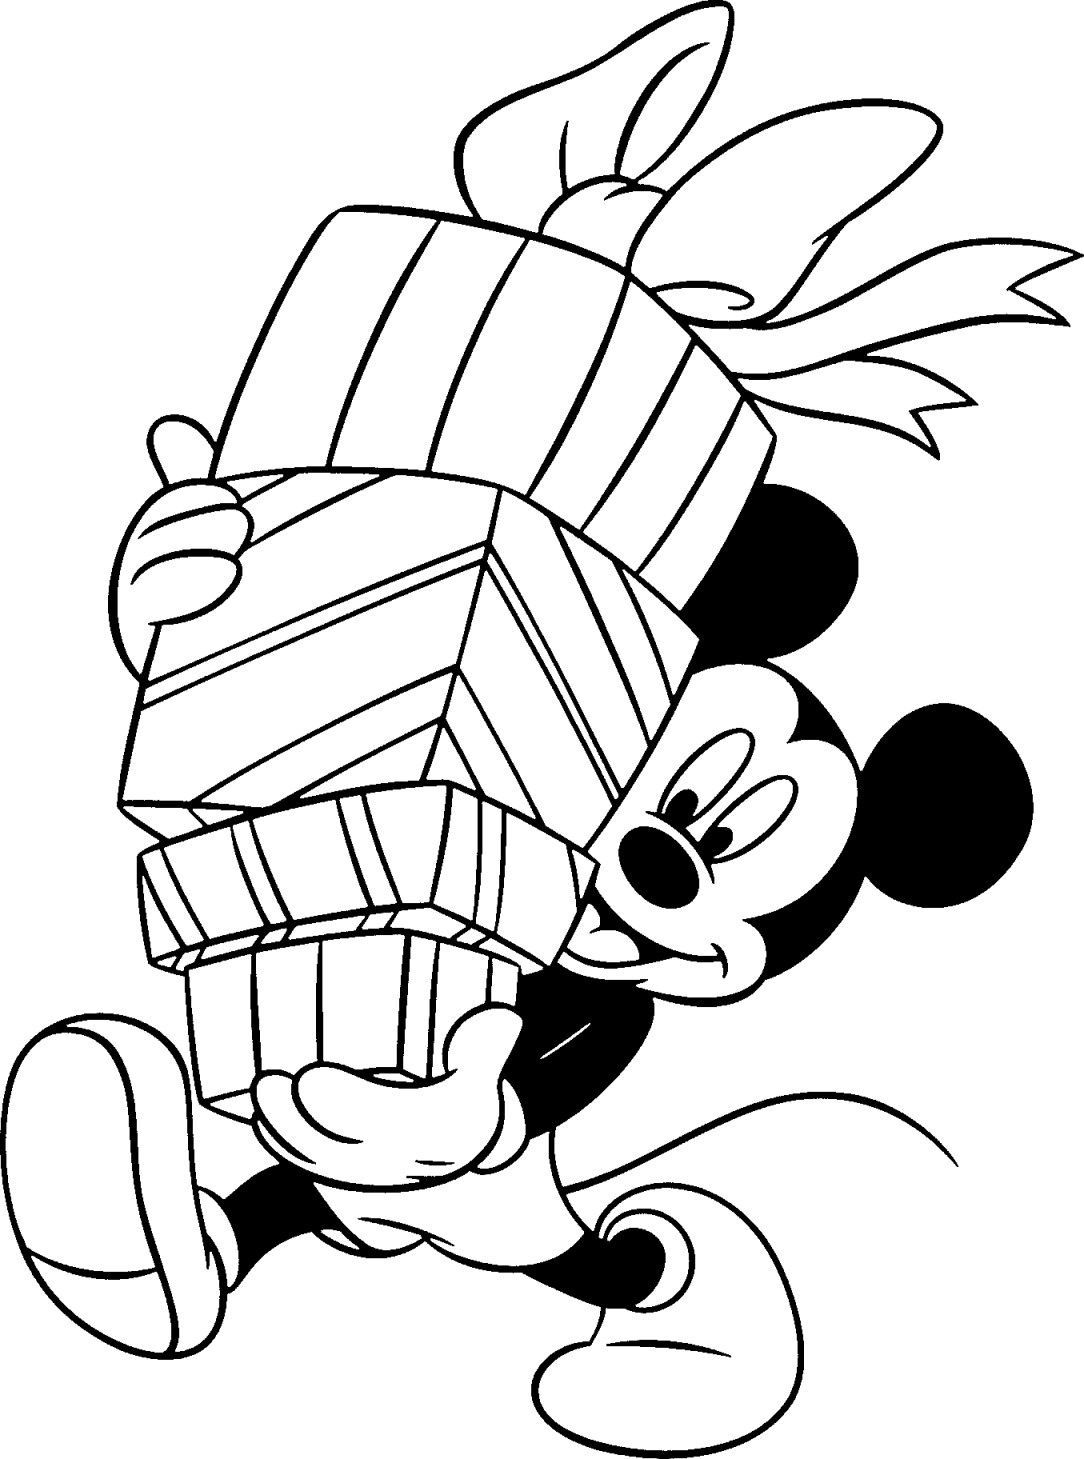 Mickey Mouse Holiday Coloring Pages Mickey Mouse Holiday Coloring Pages Free Disney Coloring Pages Cartoon Coloring Pages Birthday Coloring Pages